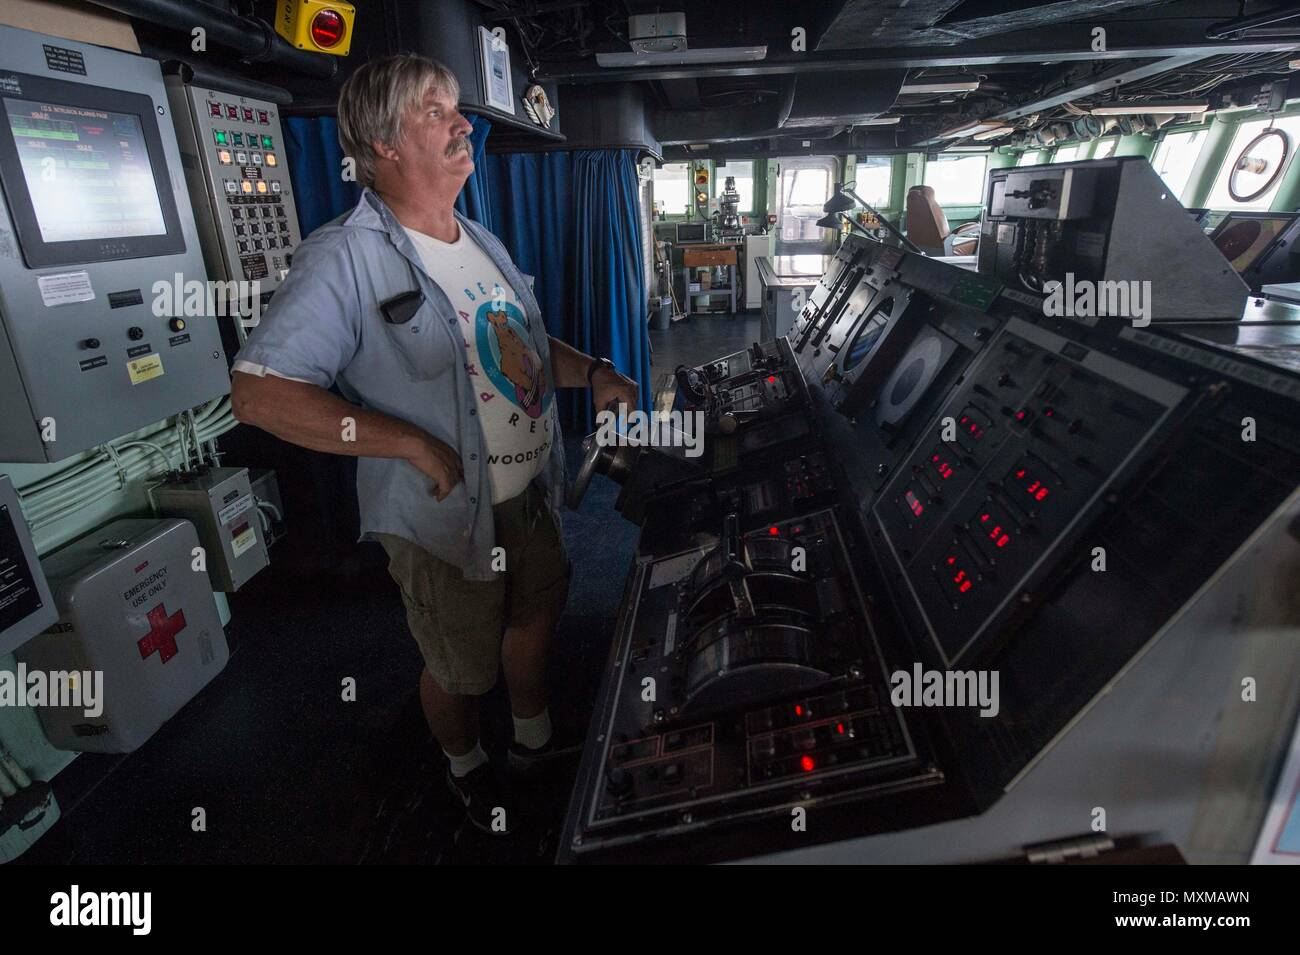 161116-N-RX777-014  ARABIAN GULF (Nov. 16, 2016) William Bostwick stands watch as helmsman on the bridge of the fast combat support ship USNS Arctic (T-AOE 8).  Arctic is deployed supporting coalition maritime forces ships in the U.S. 5th Fleet area of operations. (U.S. Navy Photo by Petty Officer 3rd Class Cole Keller) - Stock Image